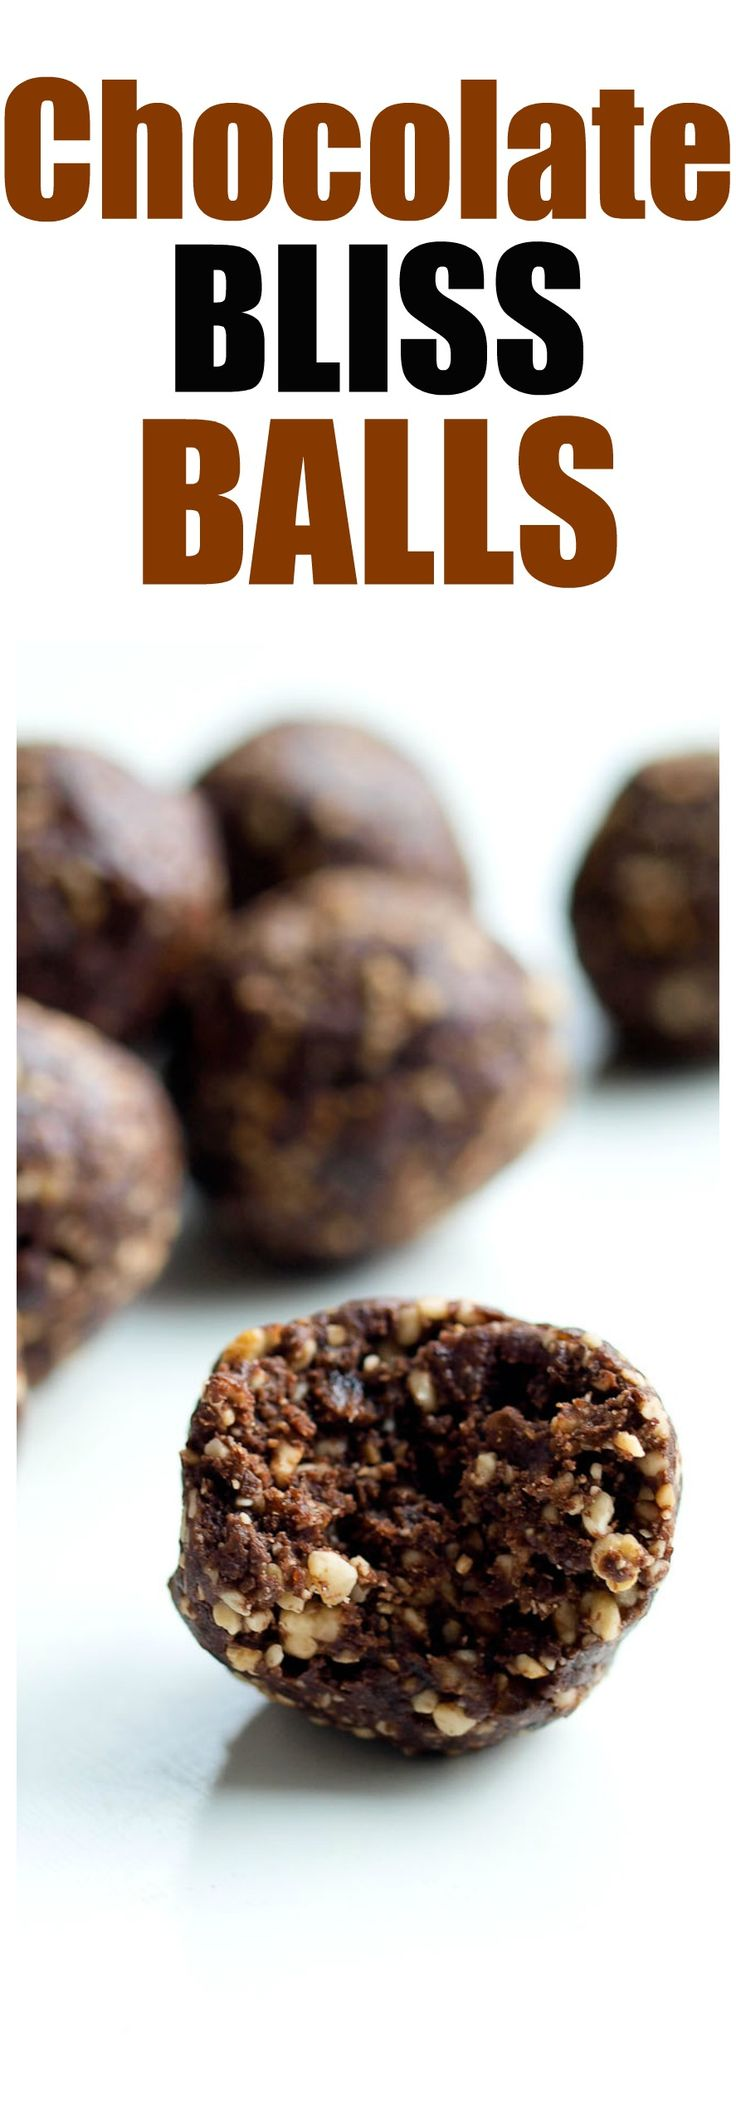 Chocolate Bliss Balls recipe. healthy snack energy ball